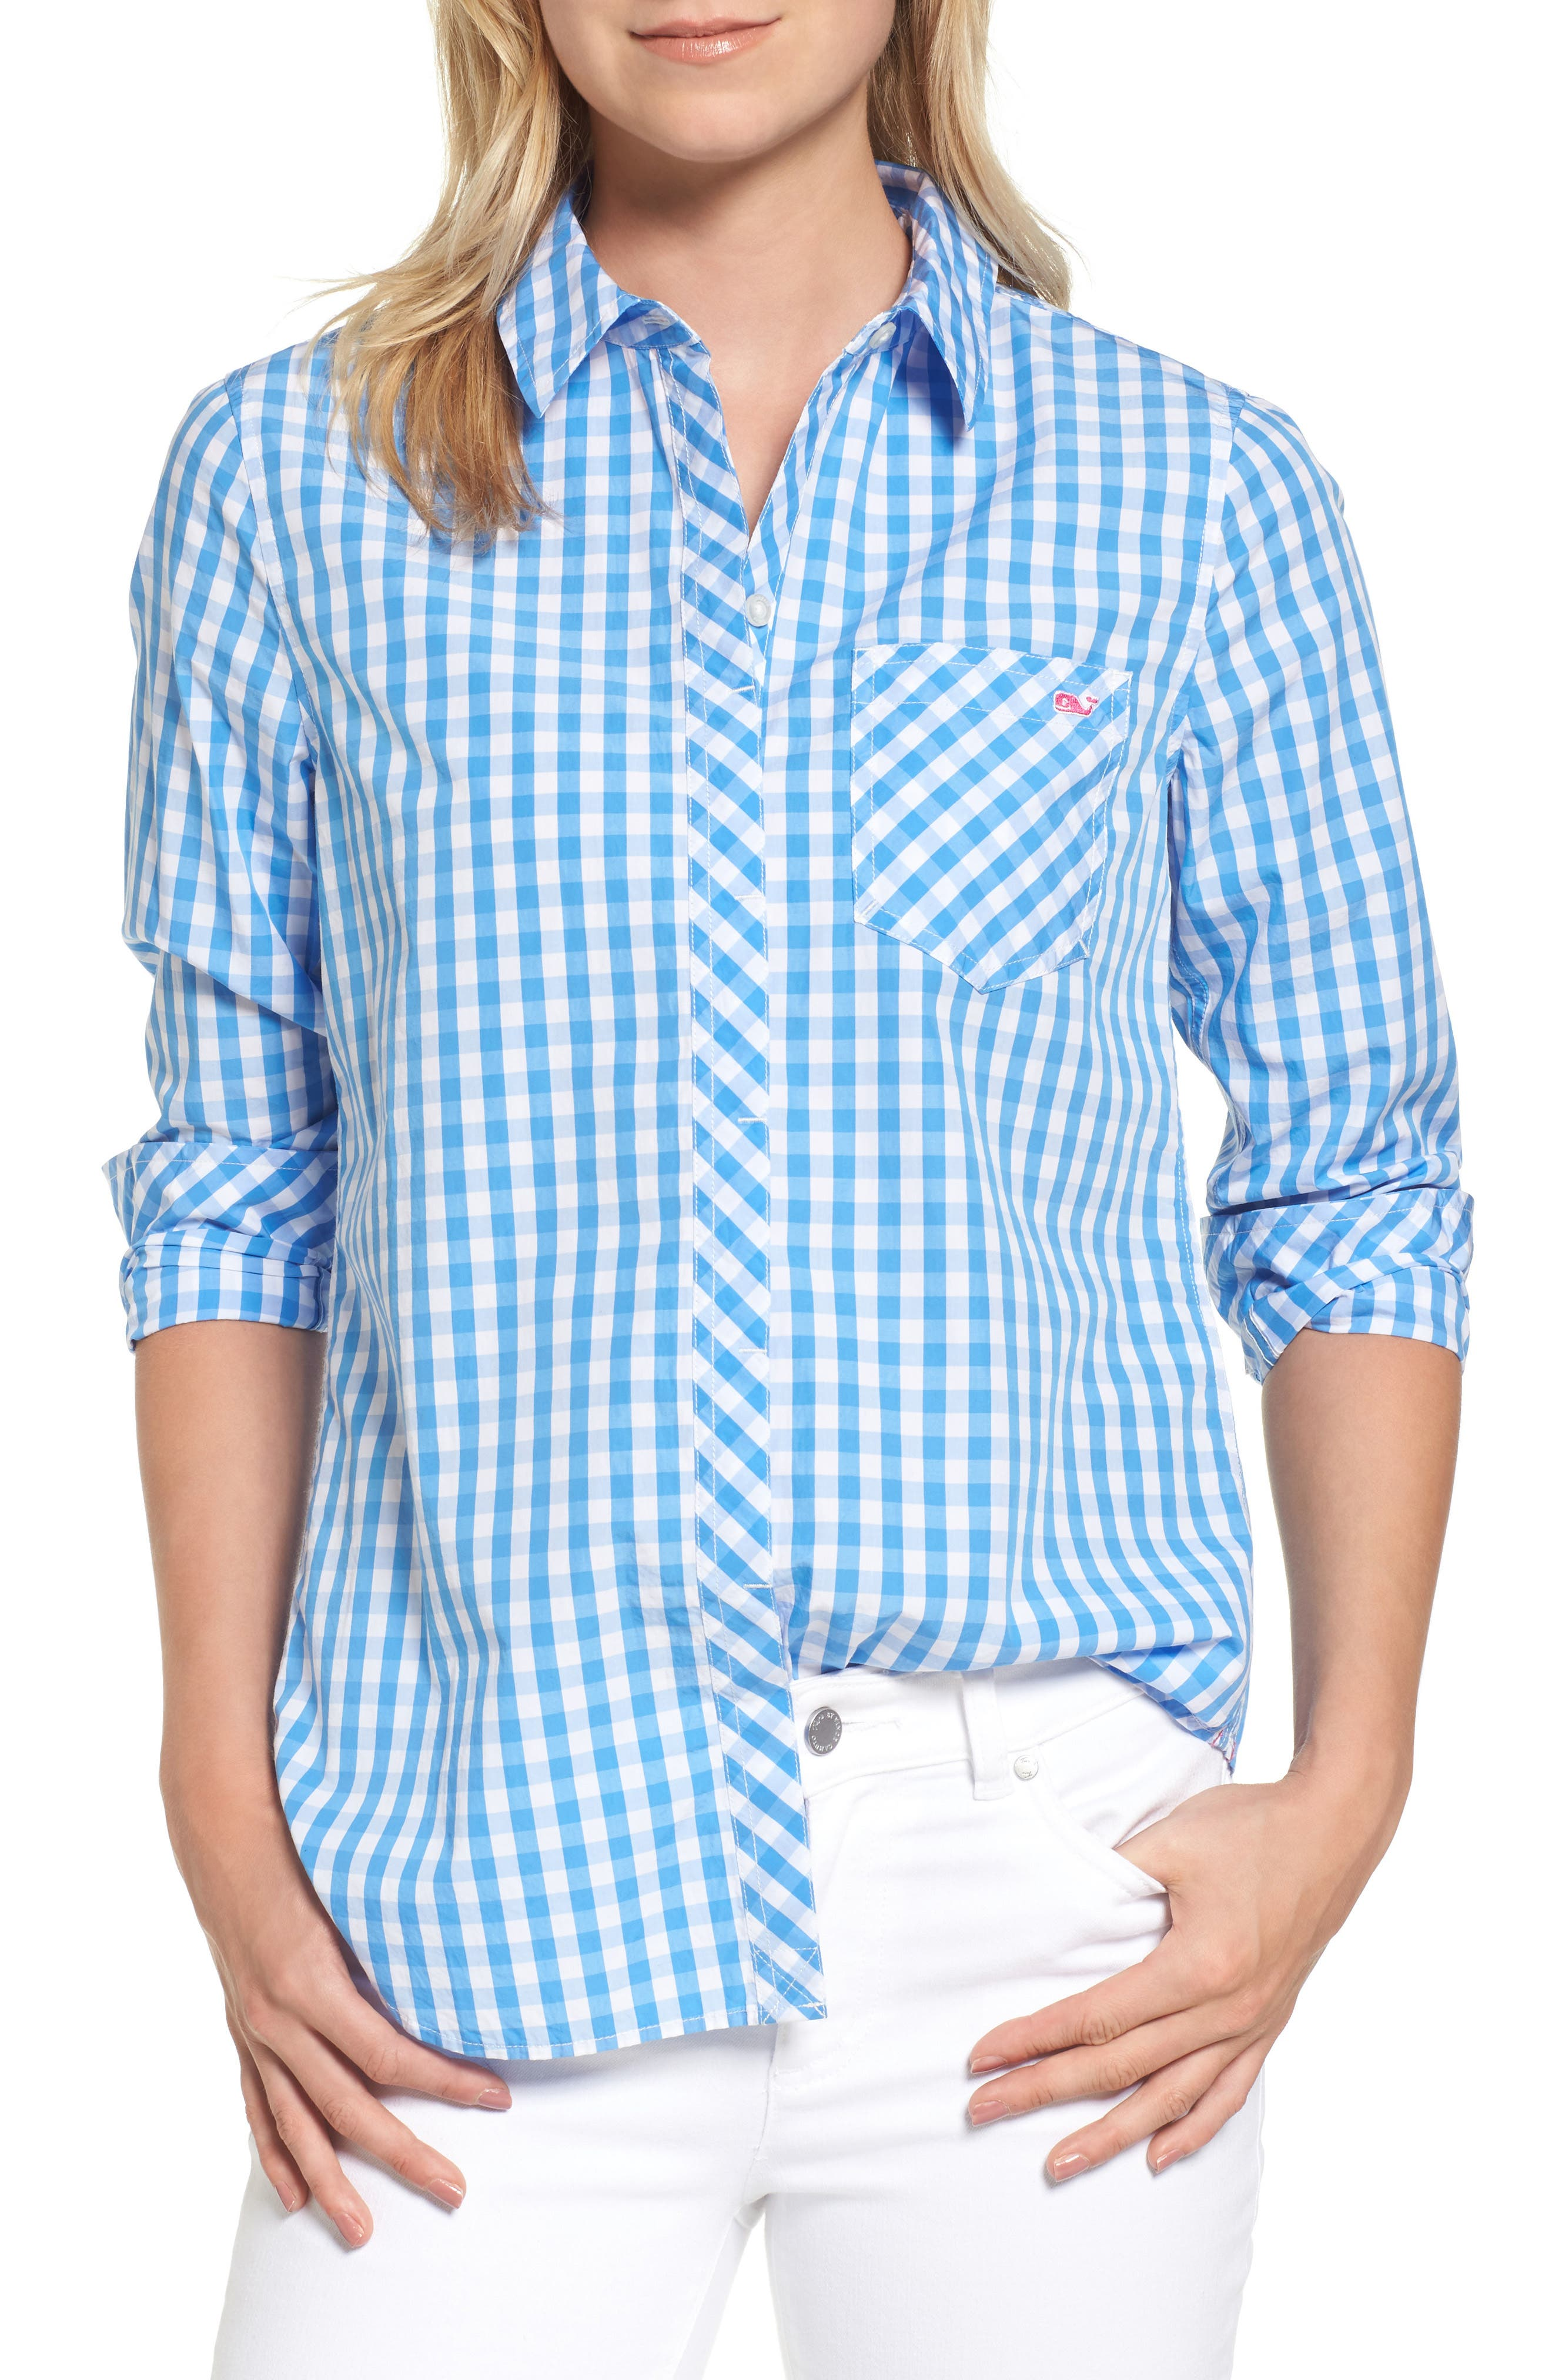 Seabreeze Gingham Pocket Shirt,                             Main thumbnail 1, color,                             464